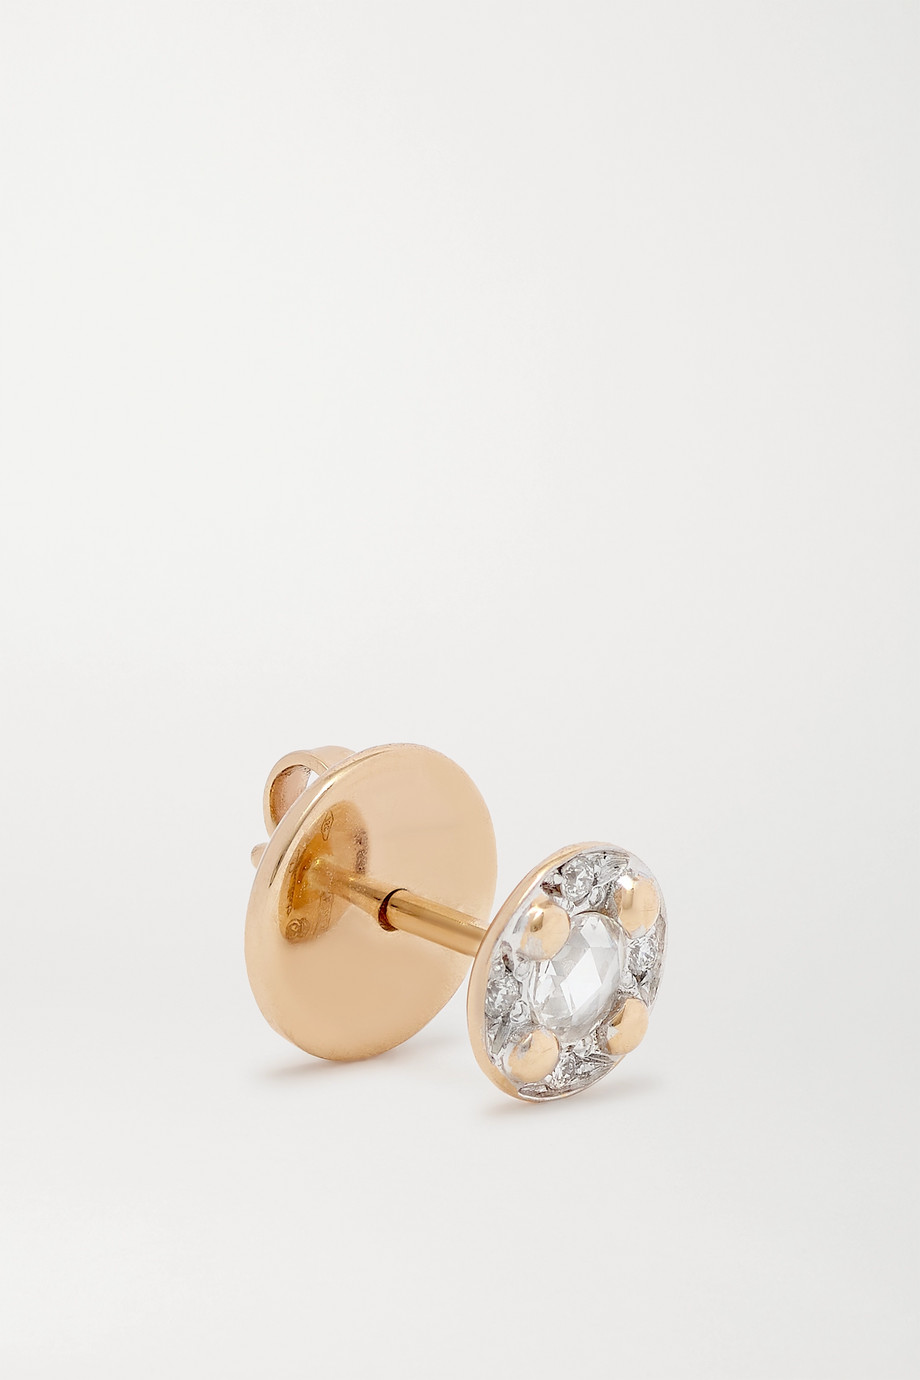 Pomellato M'ama non M'ama 18-karat rose gold diamond earrings